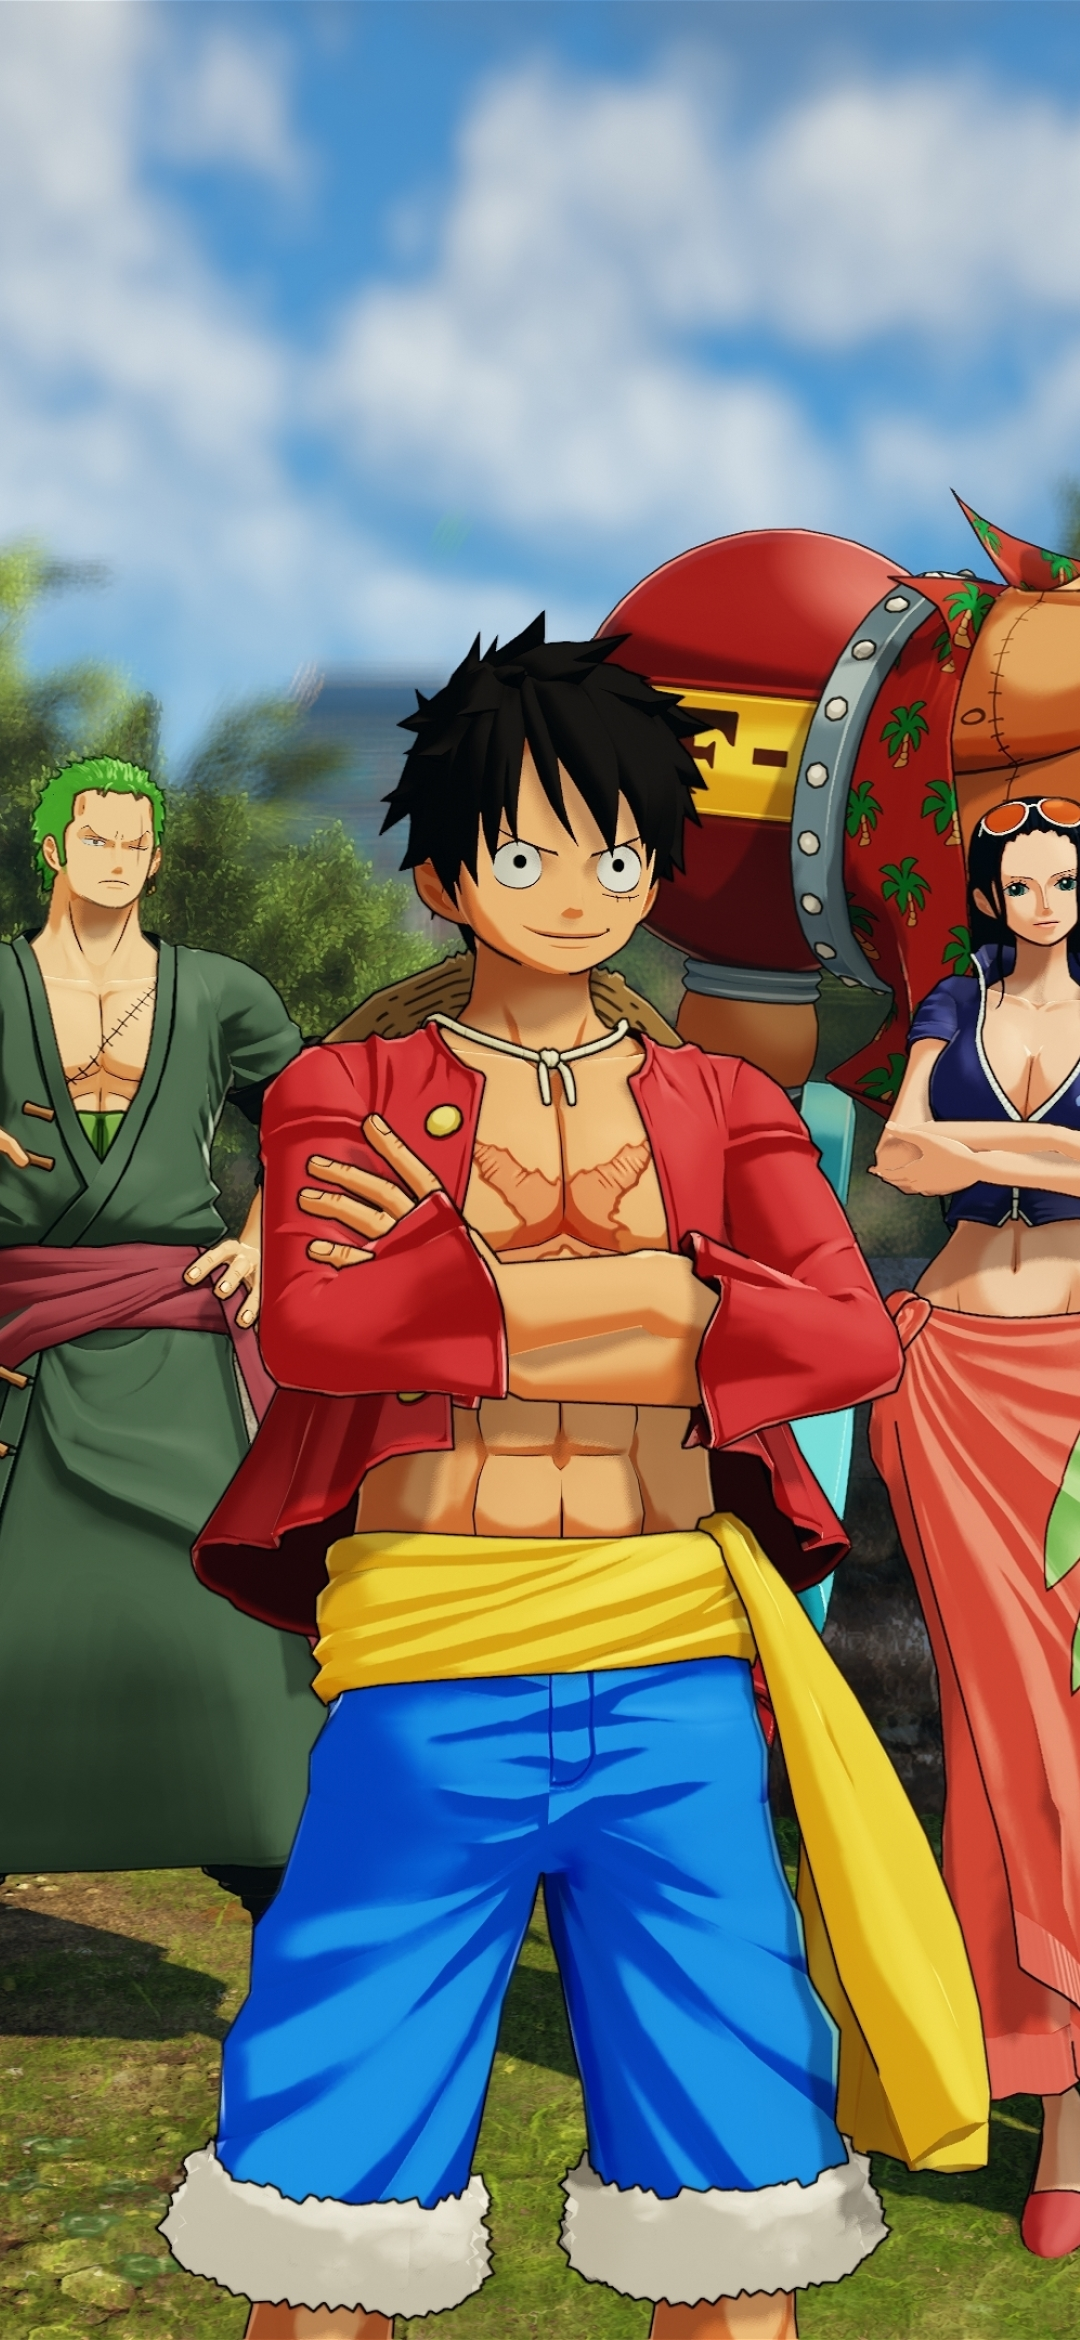 One Piece Hd 4k iPhone Wallpapers - Wallpaper Cave